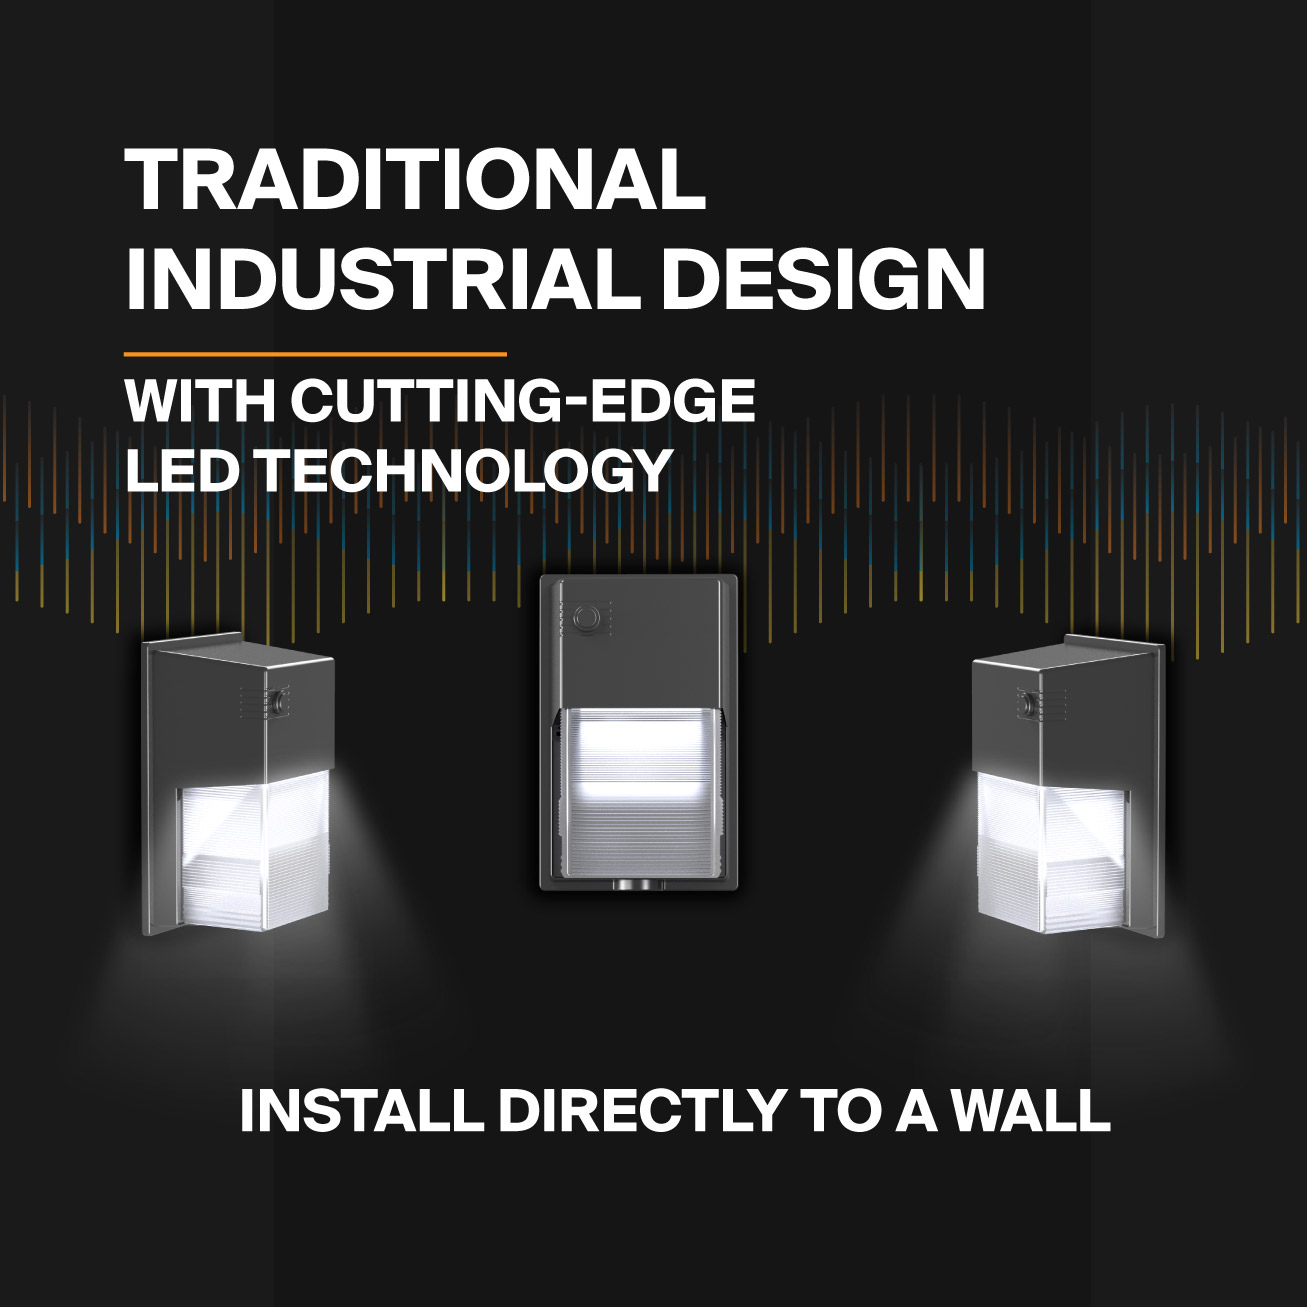 Probrite LYRA20 LED Wall Pack Install to Wall